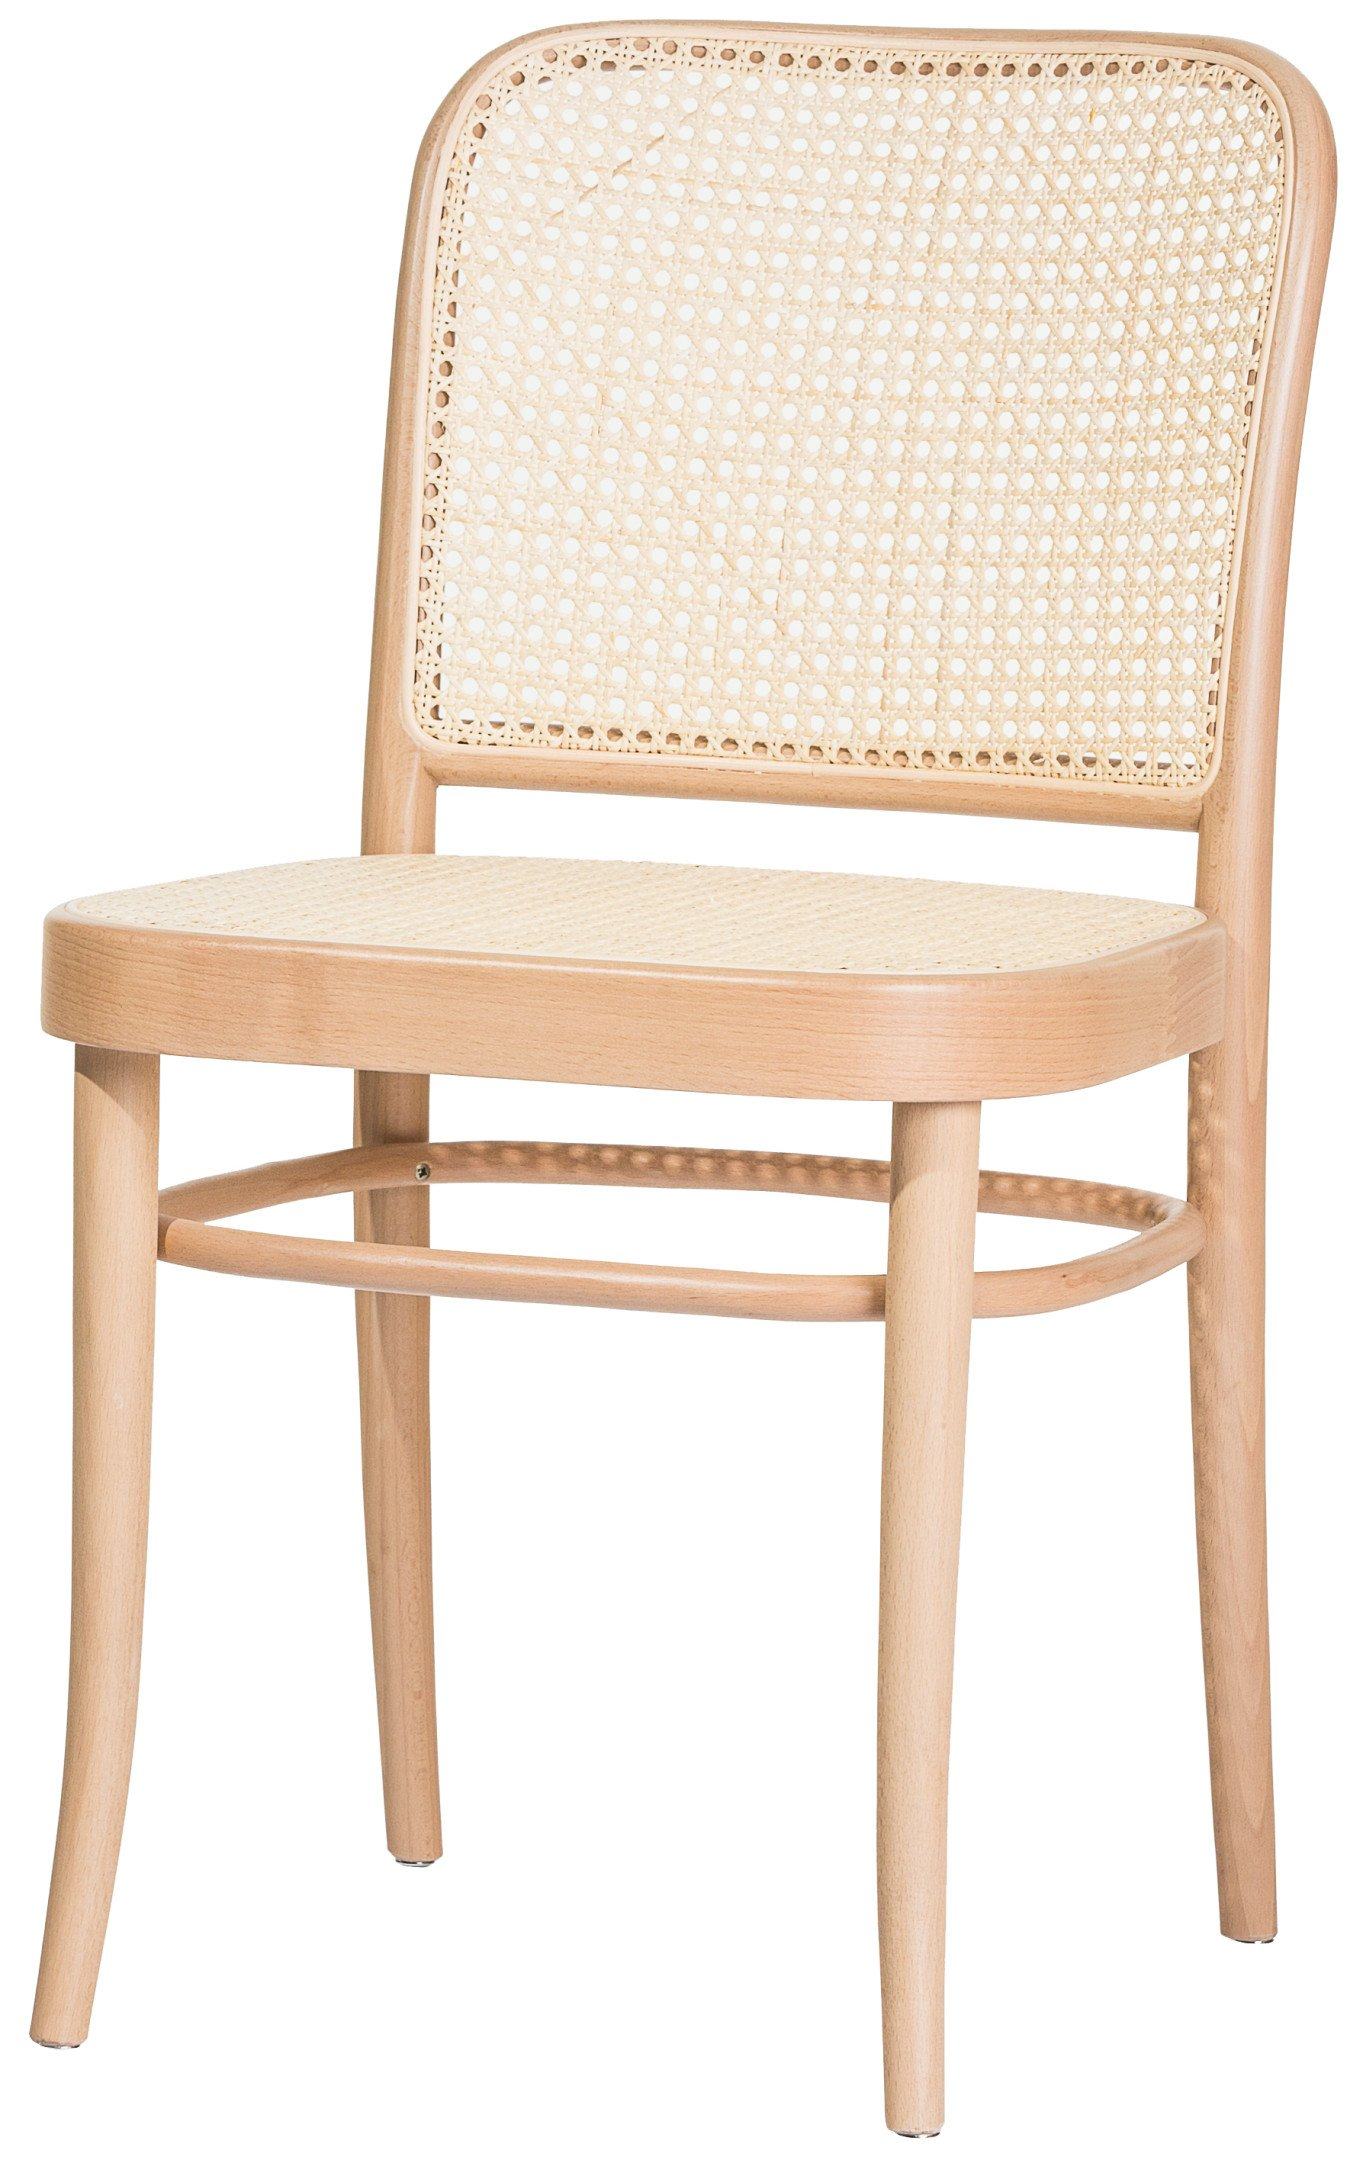 Natural 811 Chair with Cane Rattan Seat and Backrest, TON